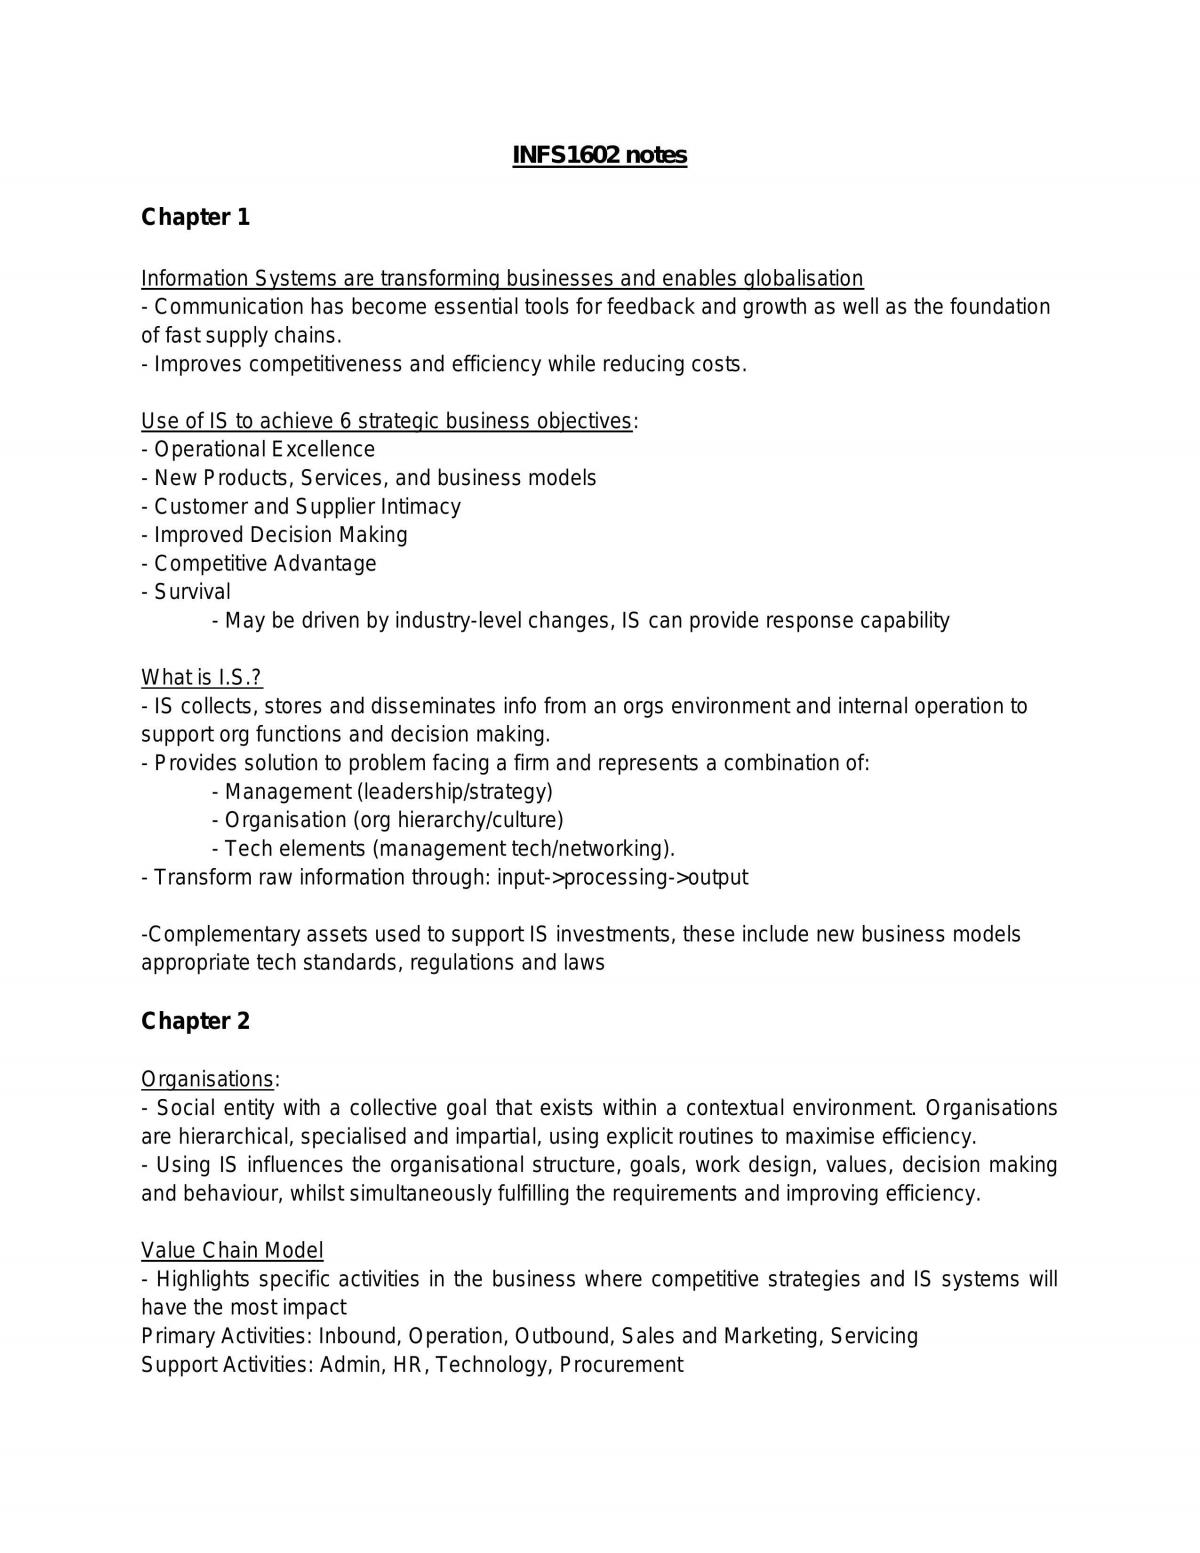 INFS1602 Summary of Each Topic - Page 1